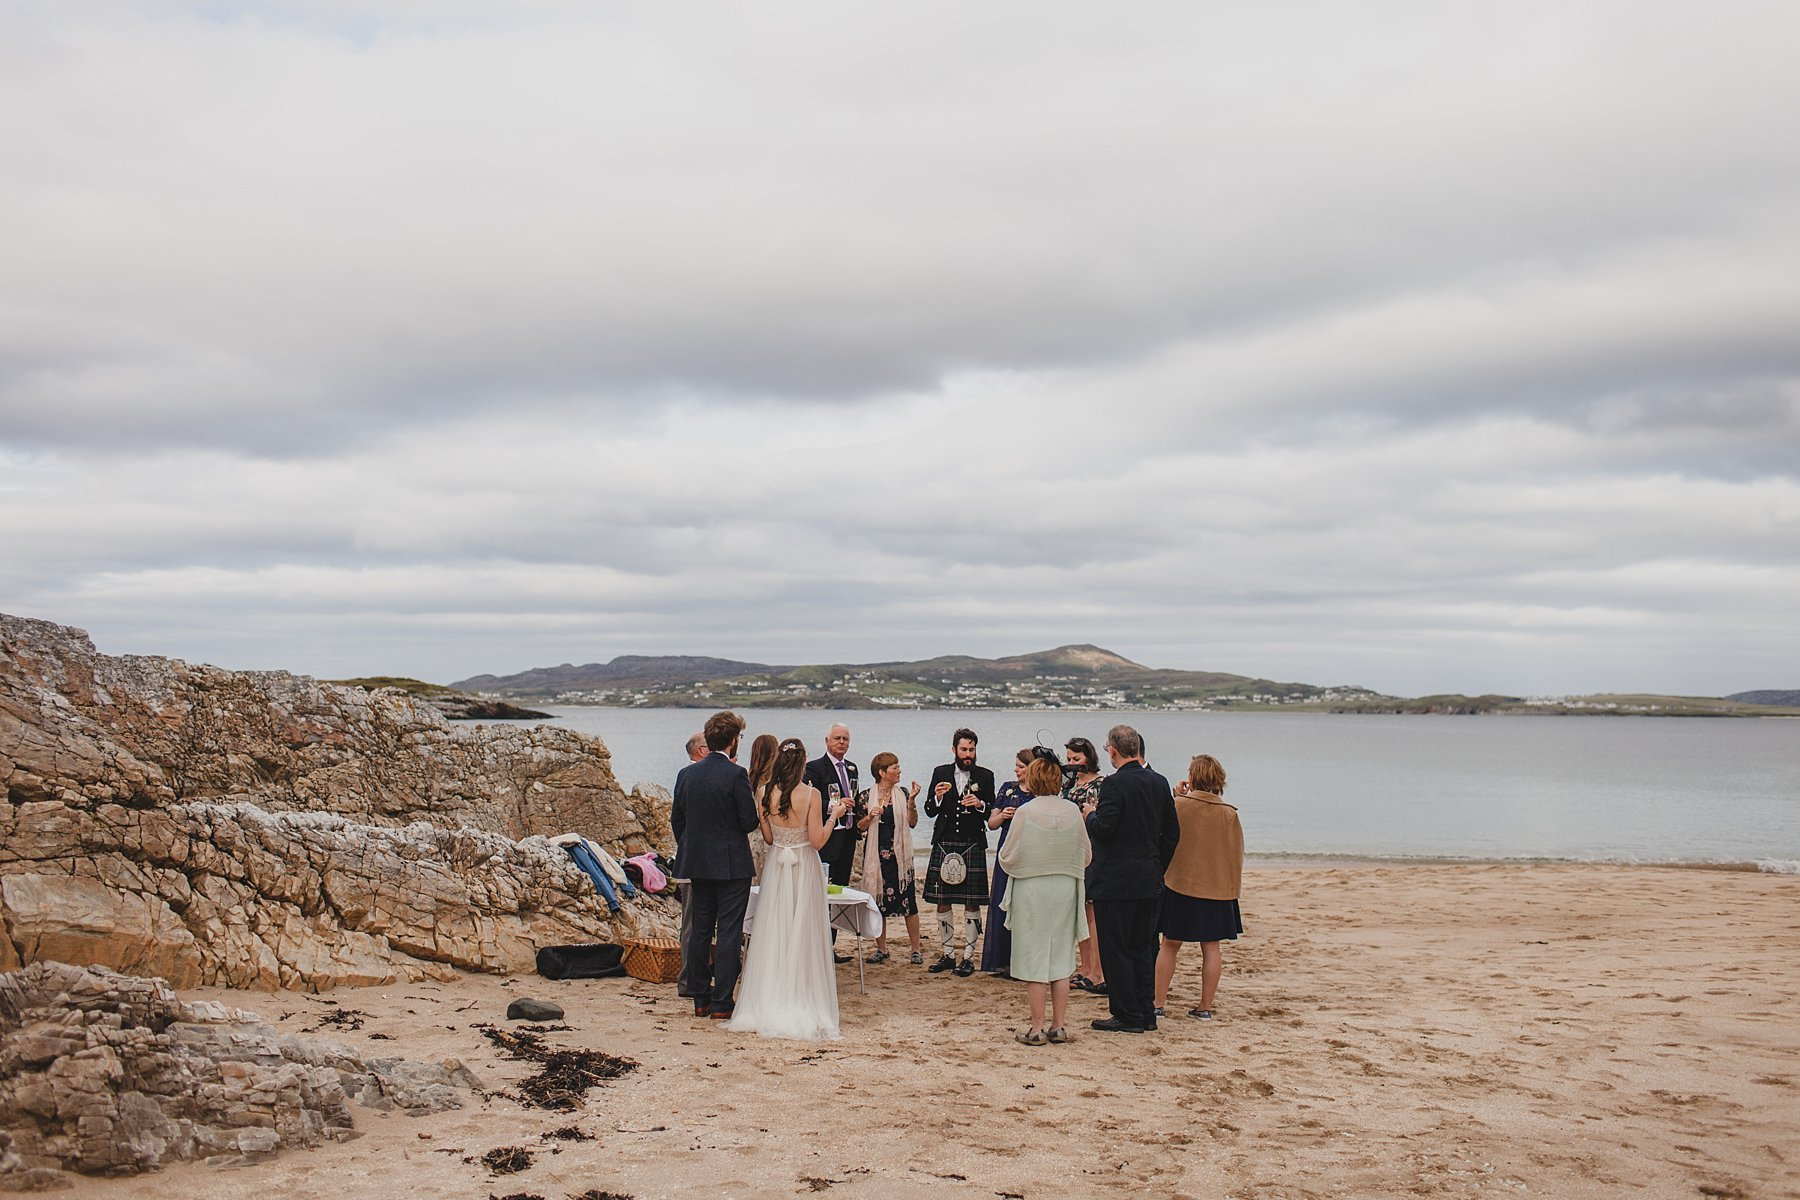 hornhead_donegak_elopement_weddings_0056